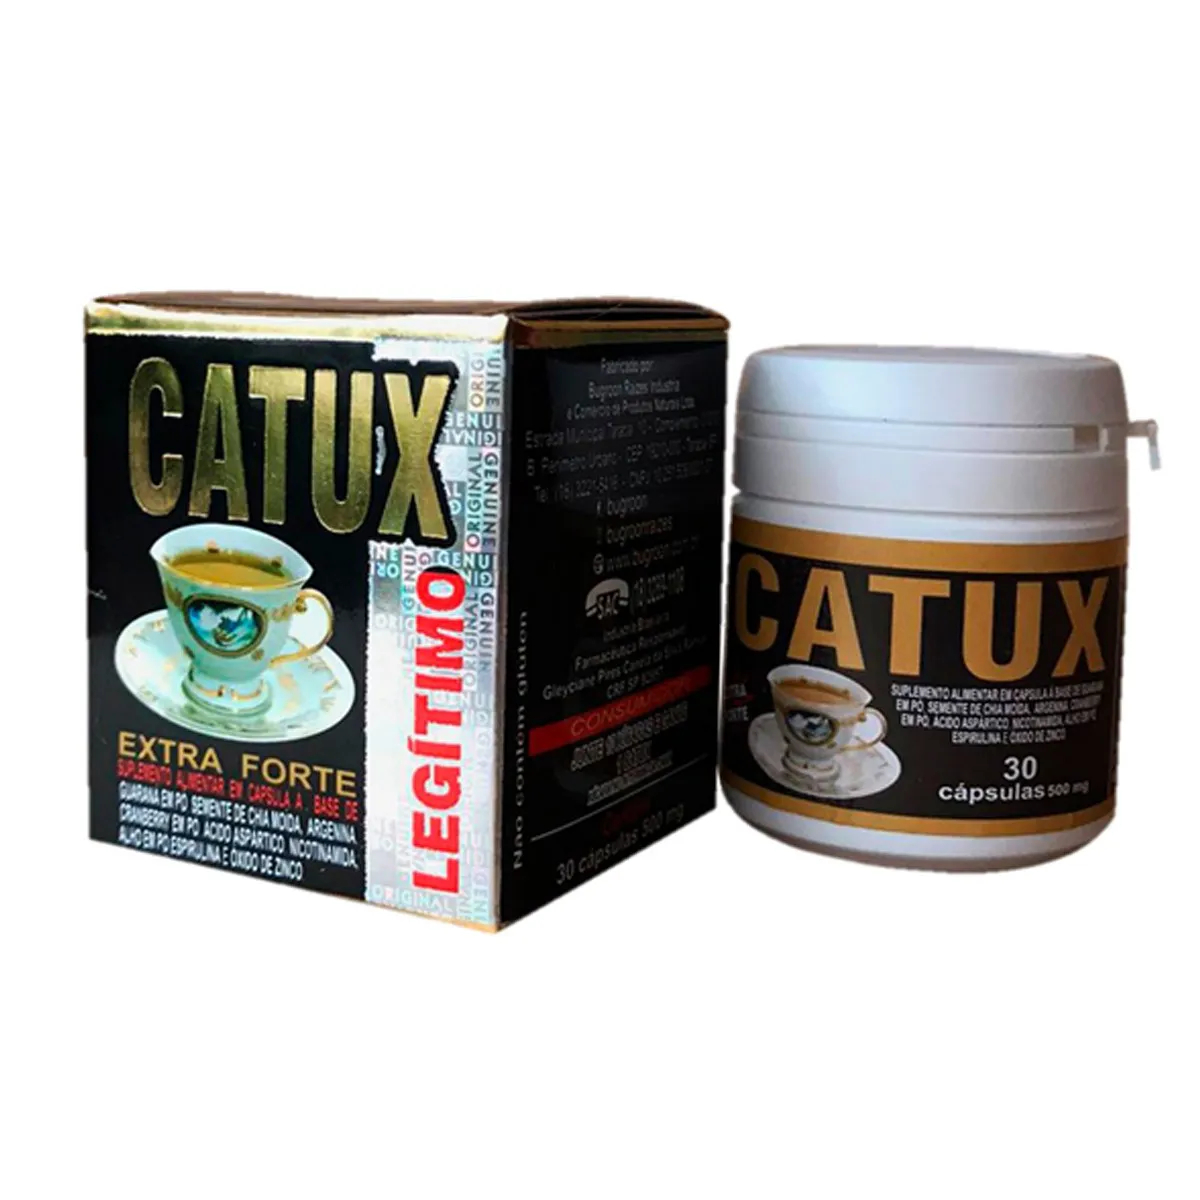 Suplemento Catux Extra Forte 500mg 30 cápsulas - Bugroon